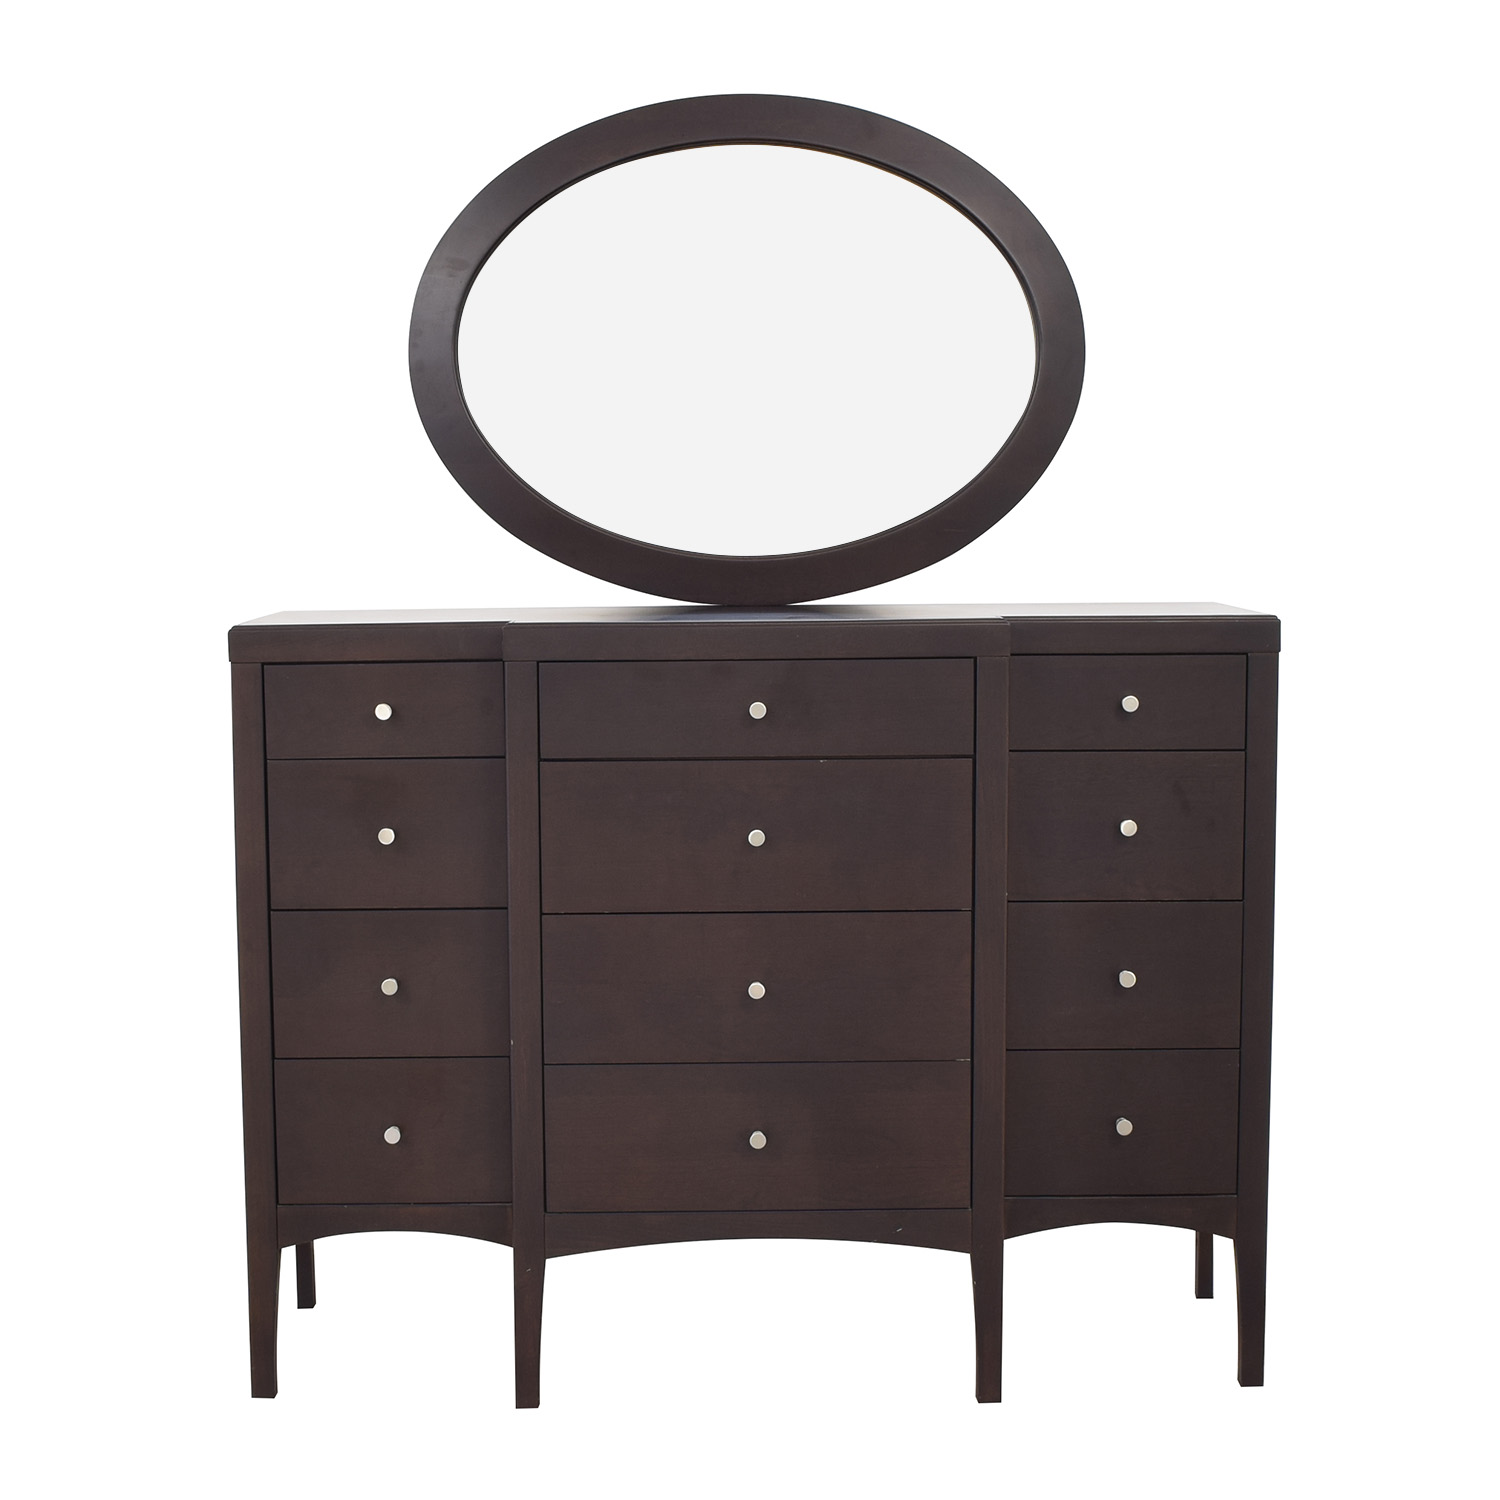 Macy's Macy's Chest of Drawers and Mirror ma